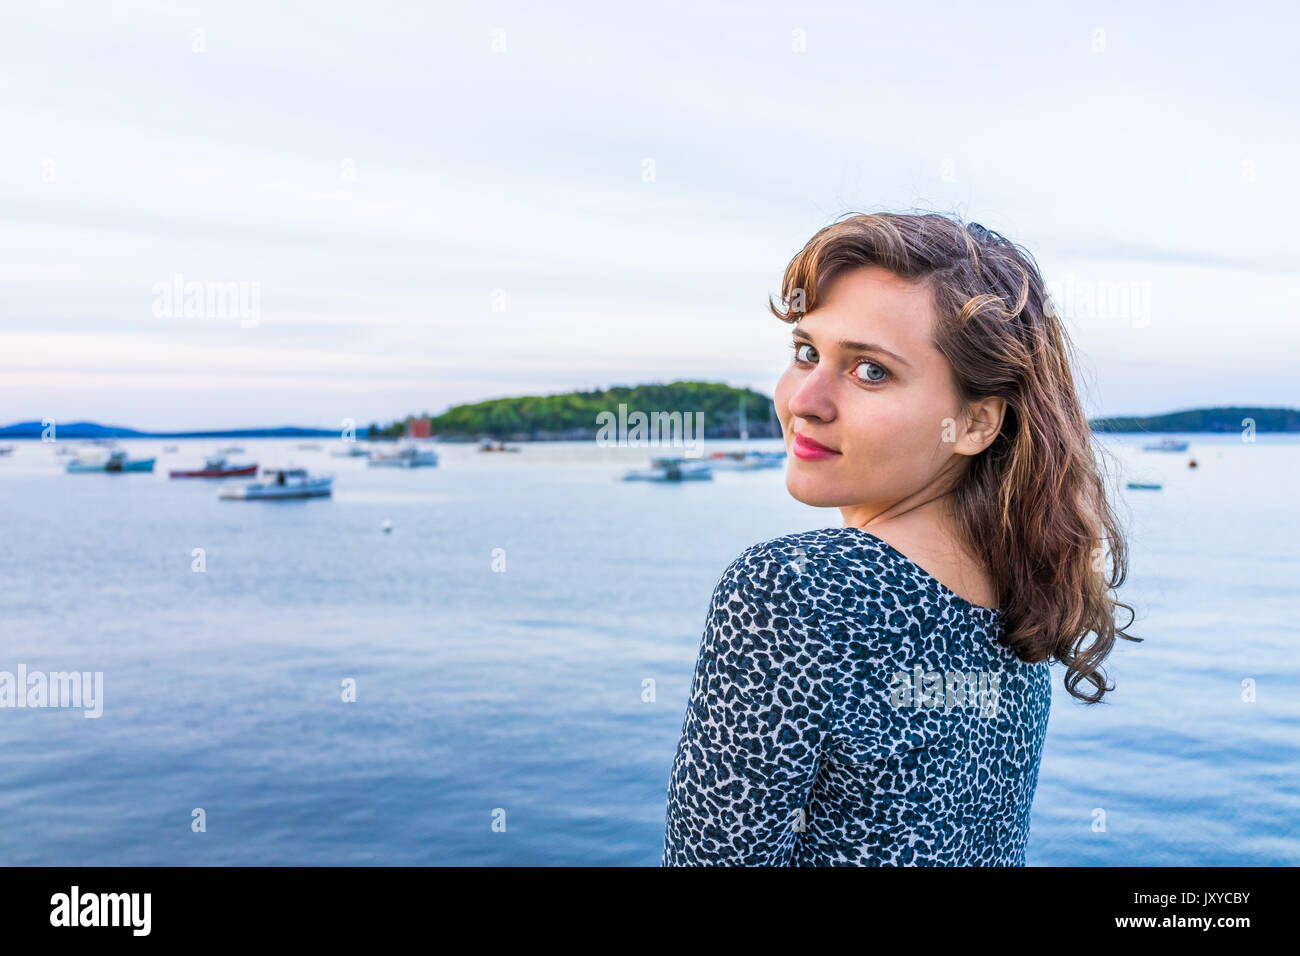 bar harbor online dating Acadian boat tours offers nature cruises, fishing trips, and lighthouse tours in bar harbor come explore coastal maine's rich wildlife and scenery with us.